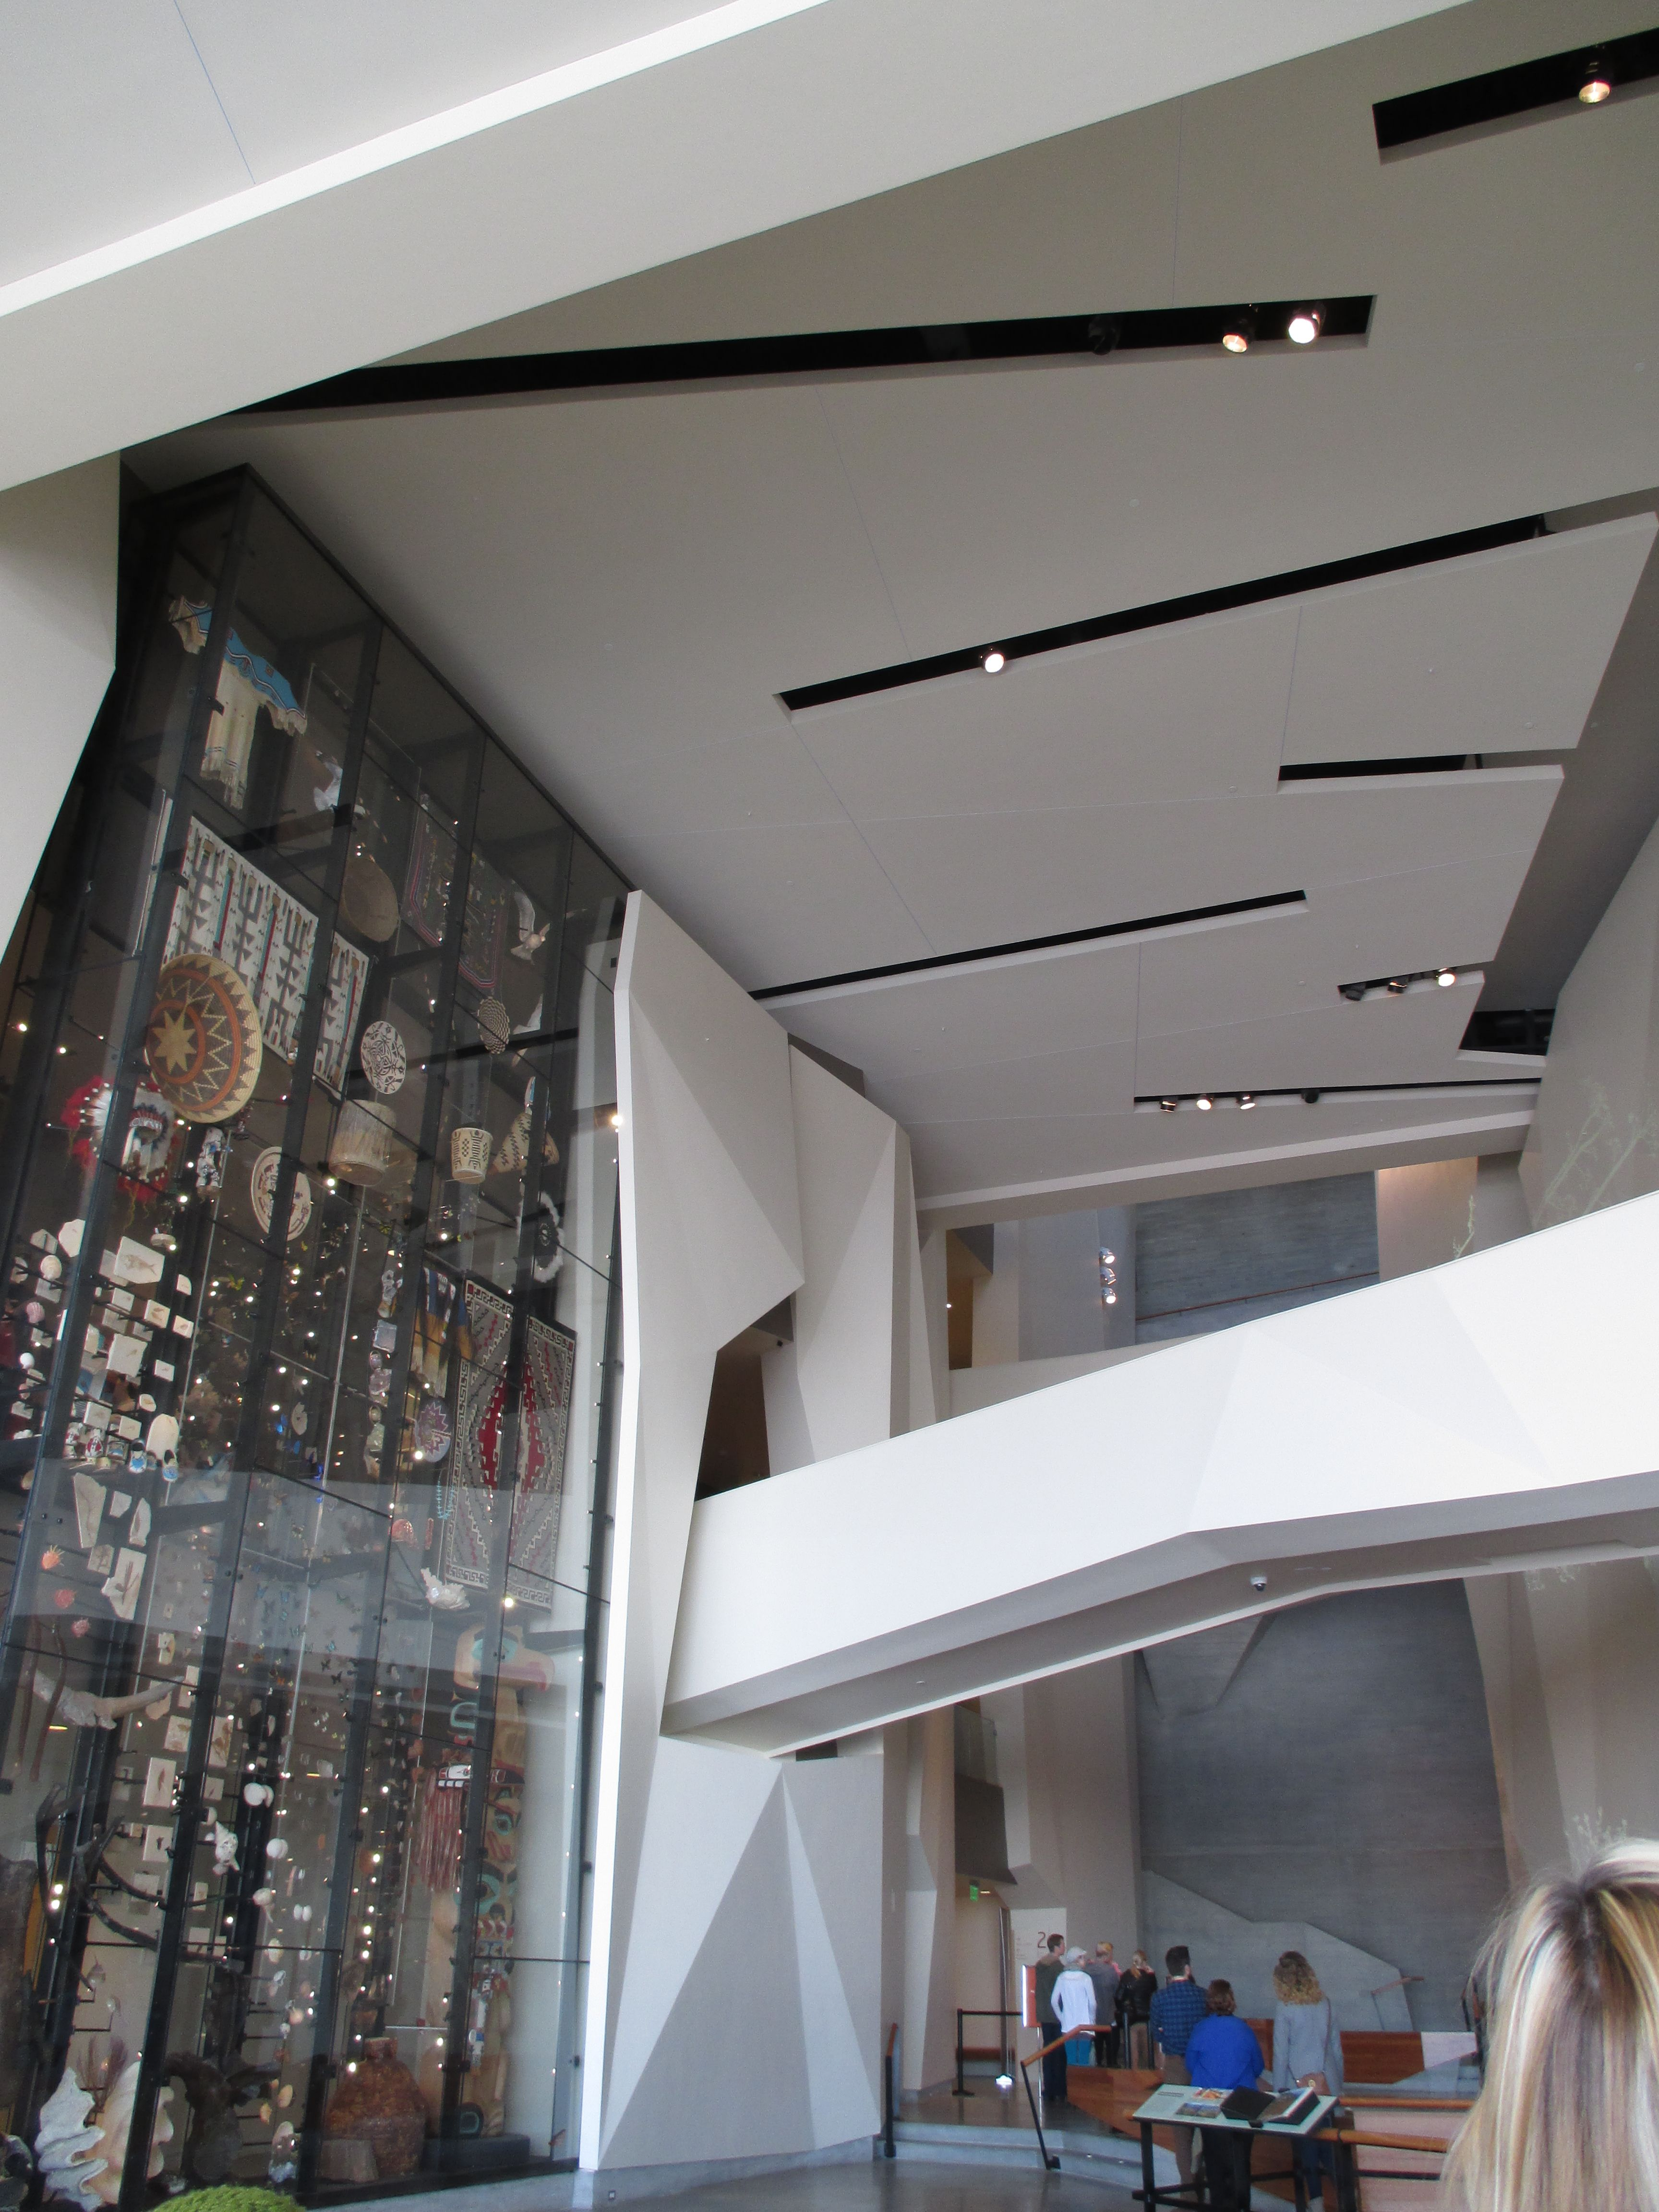 A View Of The Entrance Lobby With The Ceiling Bridge And